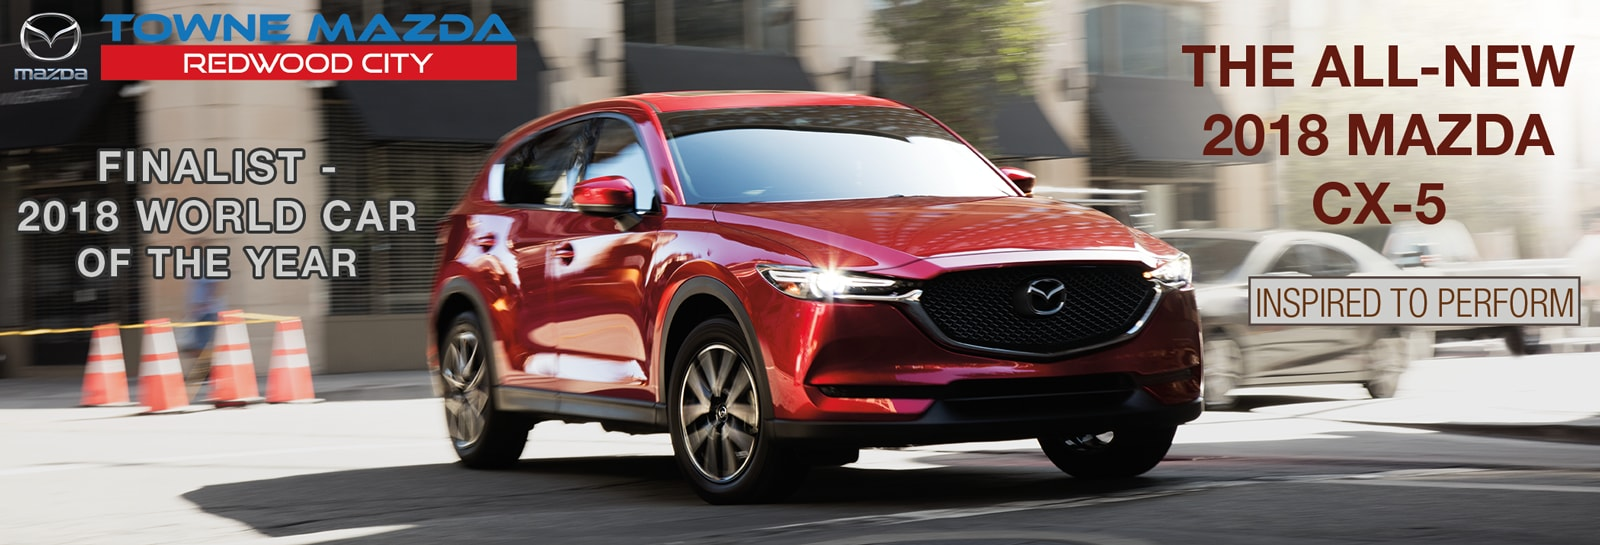 2018 Mazda CX-5 for sale in San Francisco, Bay Area, CA